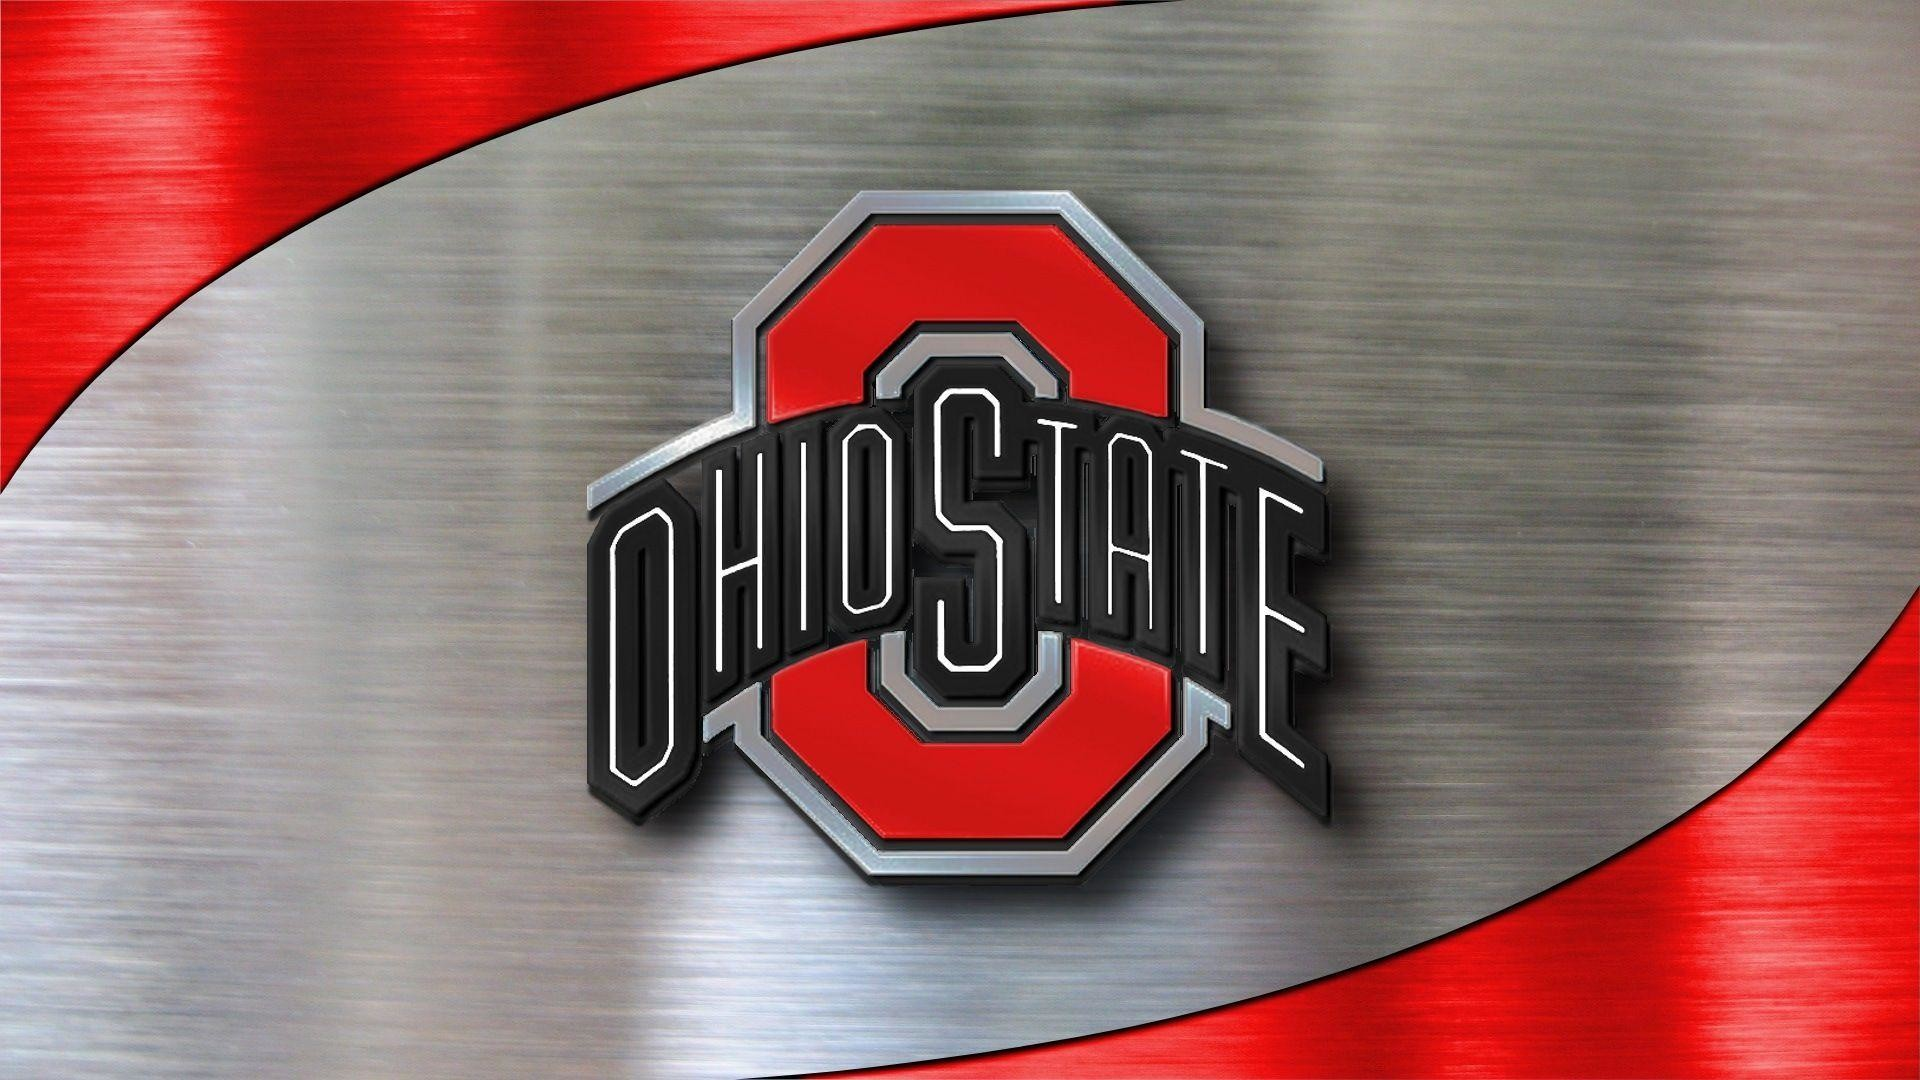 1920x1080 OSU Wallpaper 423 - Ohio State Football Wallpaper (30925026) - Fanpop